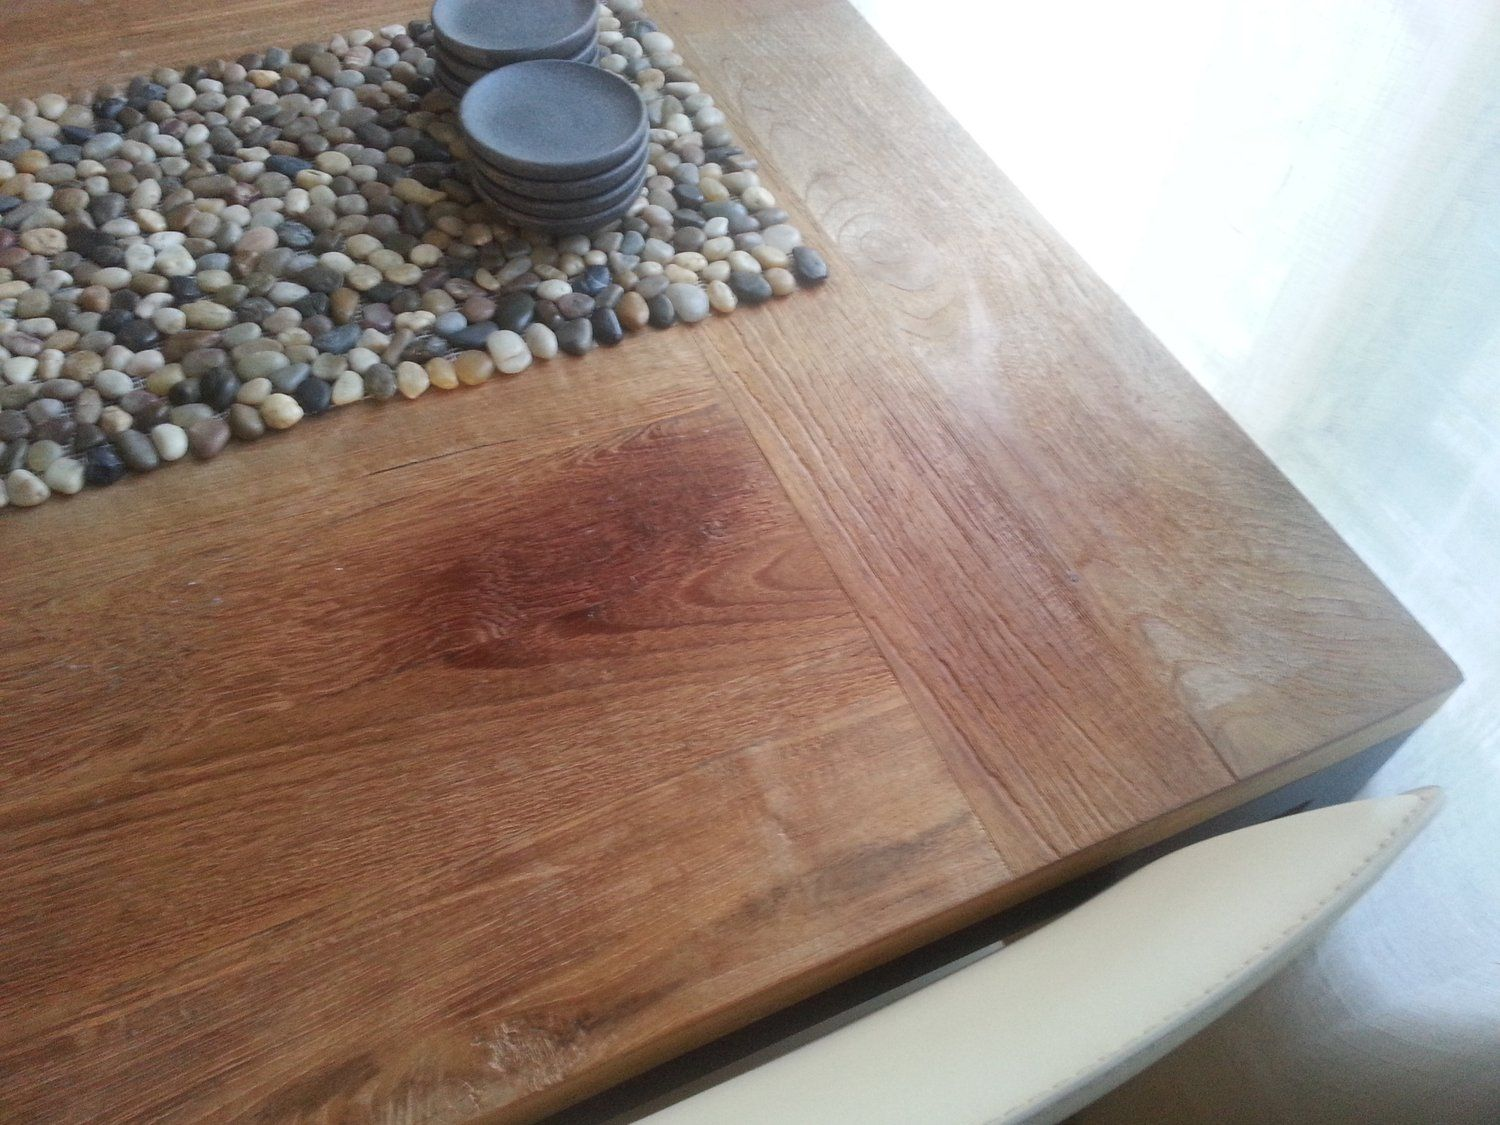 Fix For Natural Teak Tabletop Discolored By Furniture Polish Diy Furniture Teak Diy Furniture Ikea